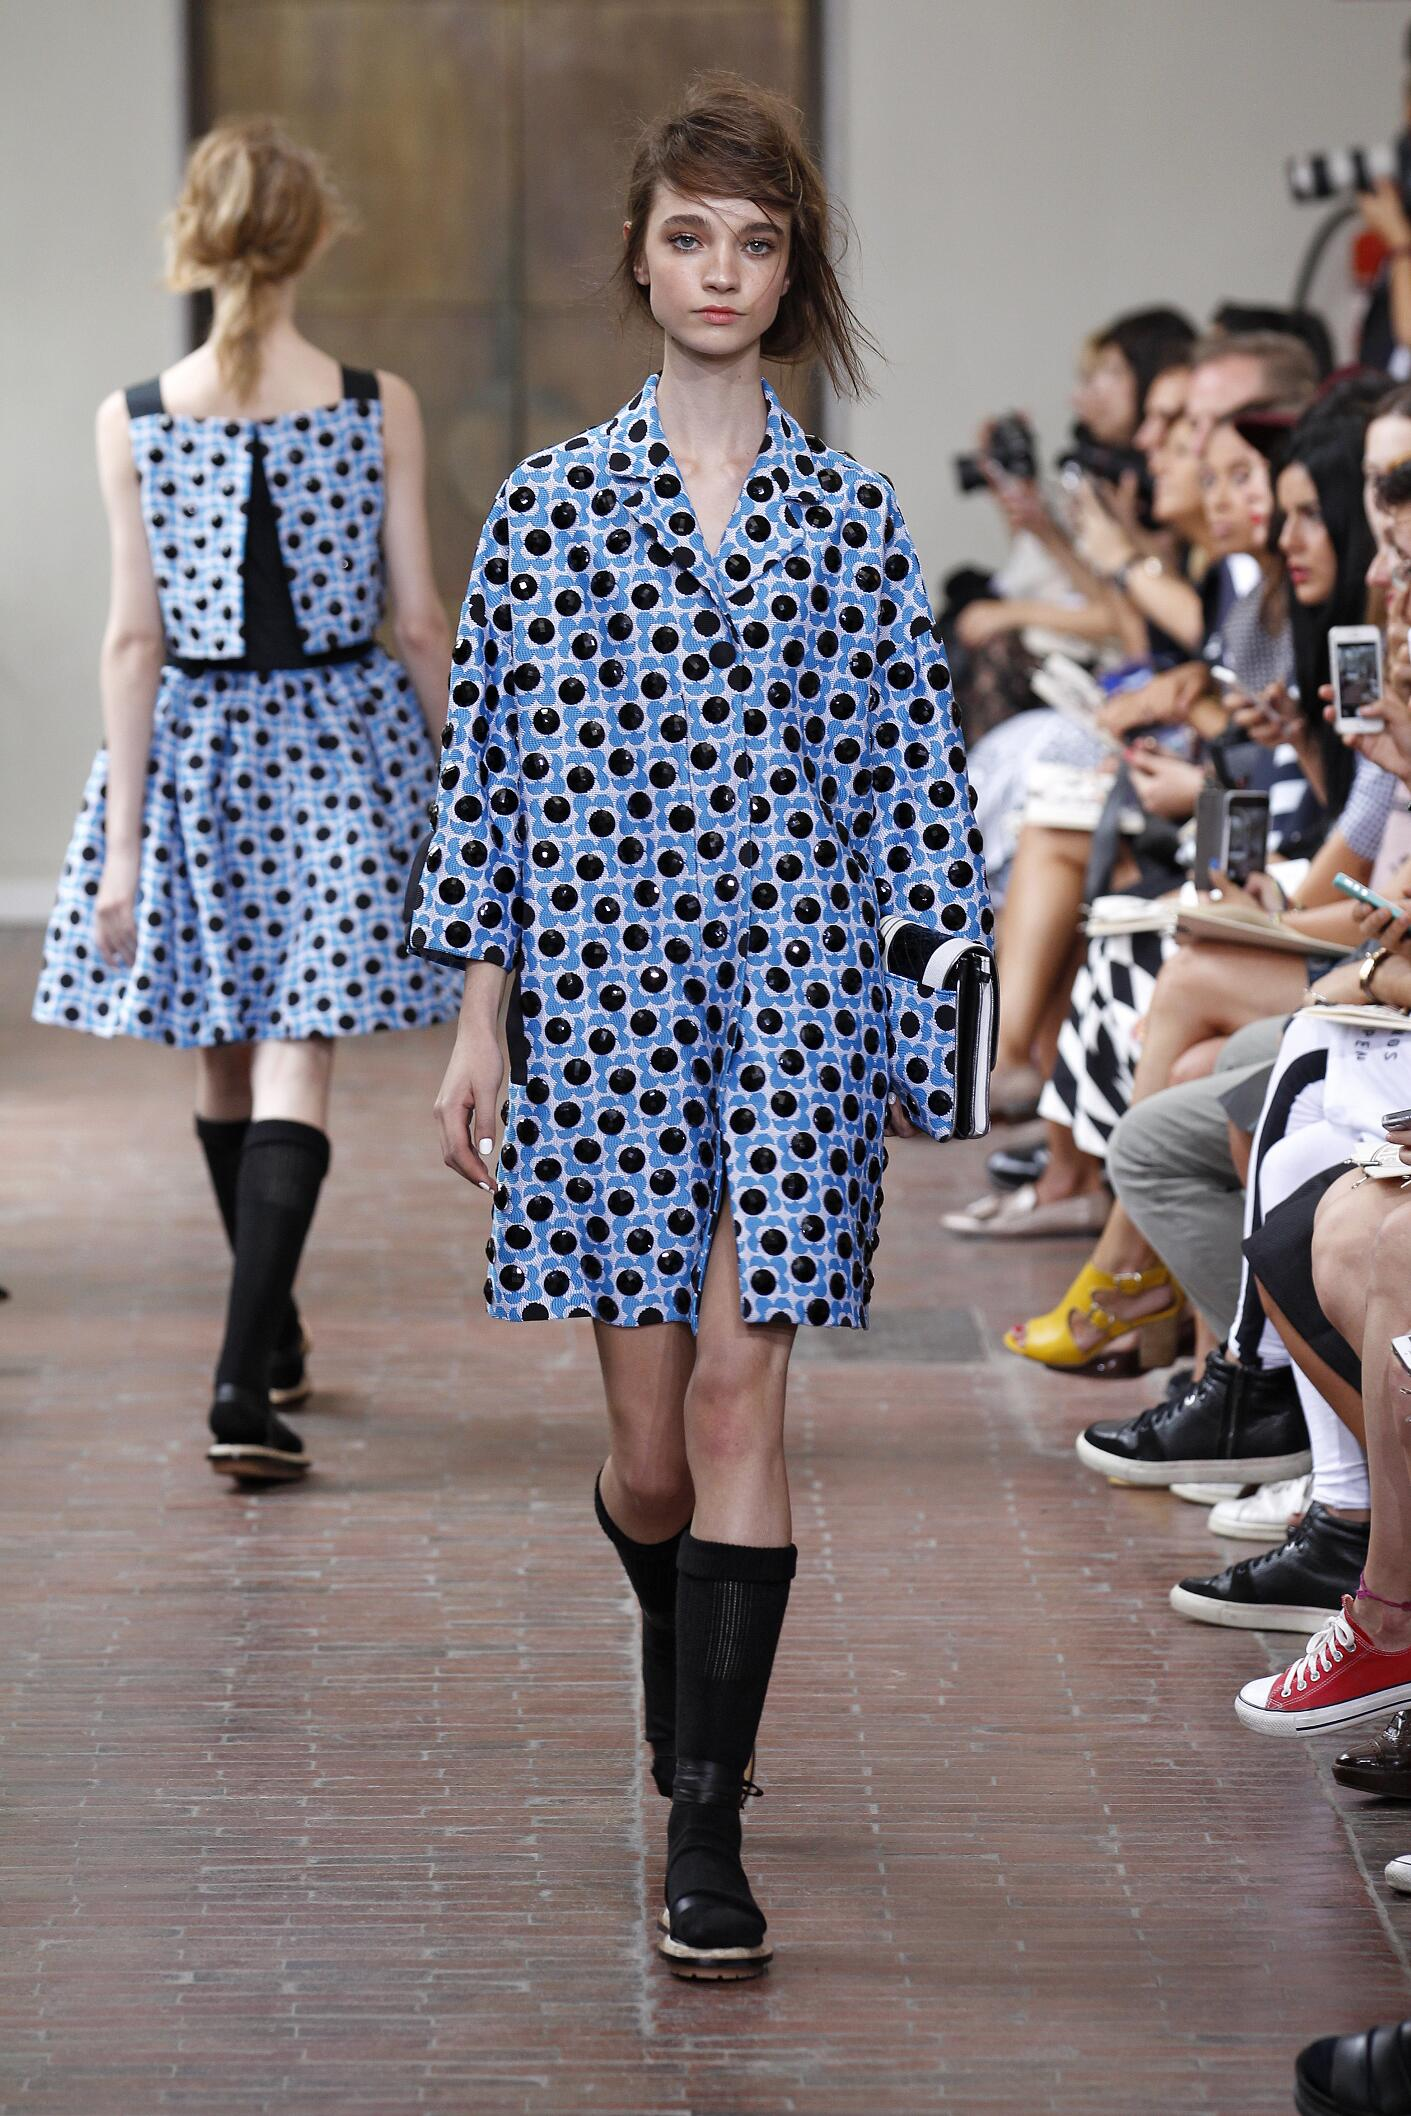 Spring 2015 Fashion Trends I'm Isola Marras